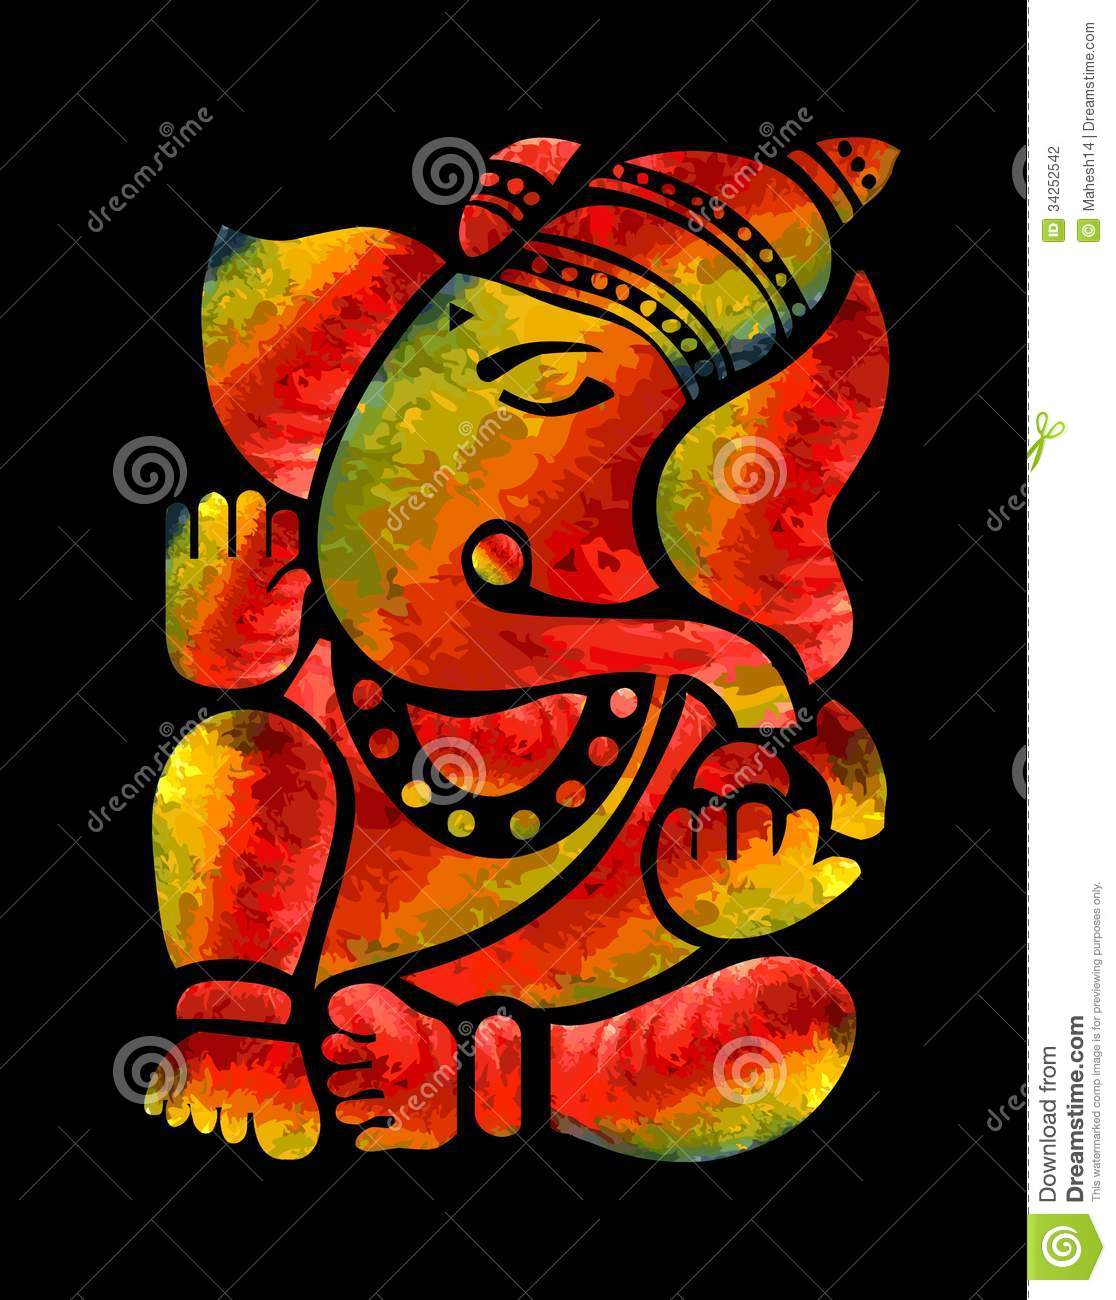 chakra map with Stock Photography Ganesha Painting Hindu God Multicolor Image34252542 on 2212113022 also Paddle And Pedal Bears Ears National Monument additionally Stock Photography Ganesha Painting Hindu God Multicolor Image34252542 in addition Newsletter411 further Naruto.